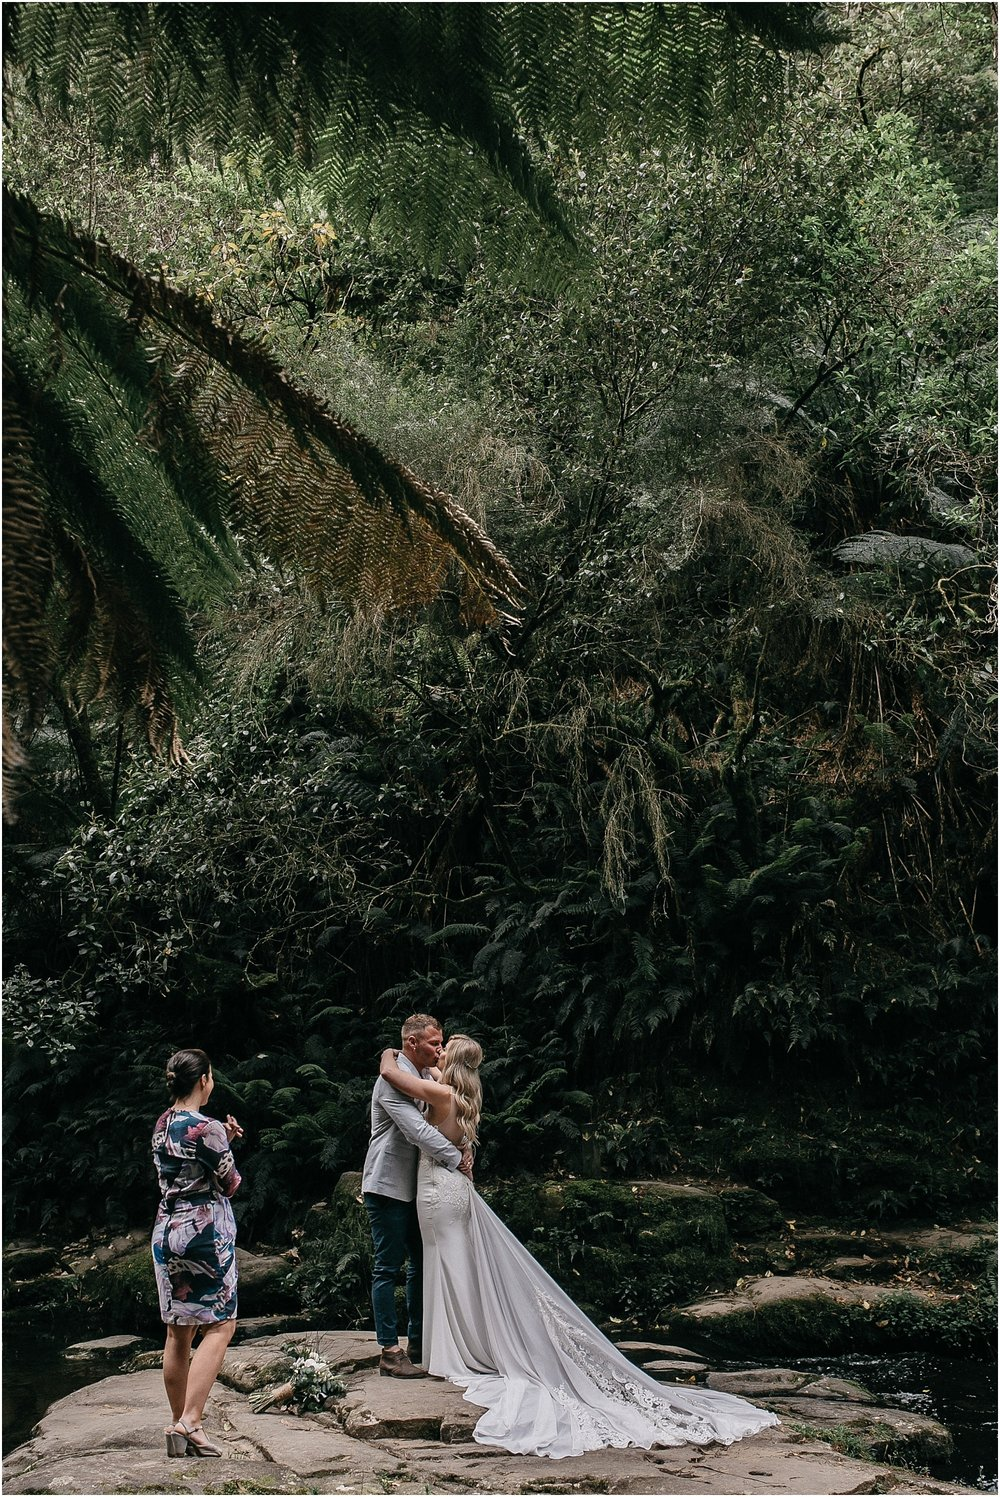 Renee and Ash's real elopement in Lorne on the Great Ocean Roadwith the ceremony at erskin falls._0084.jpg